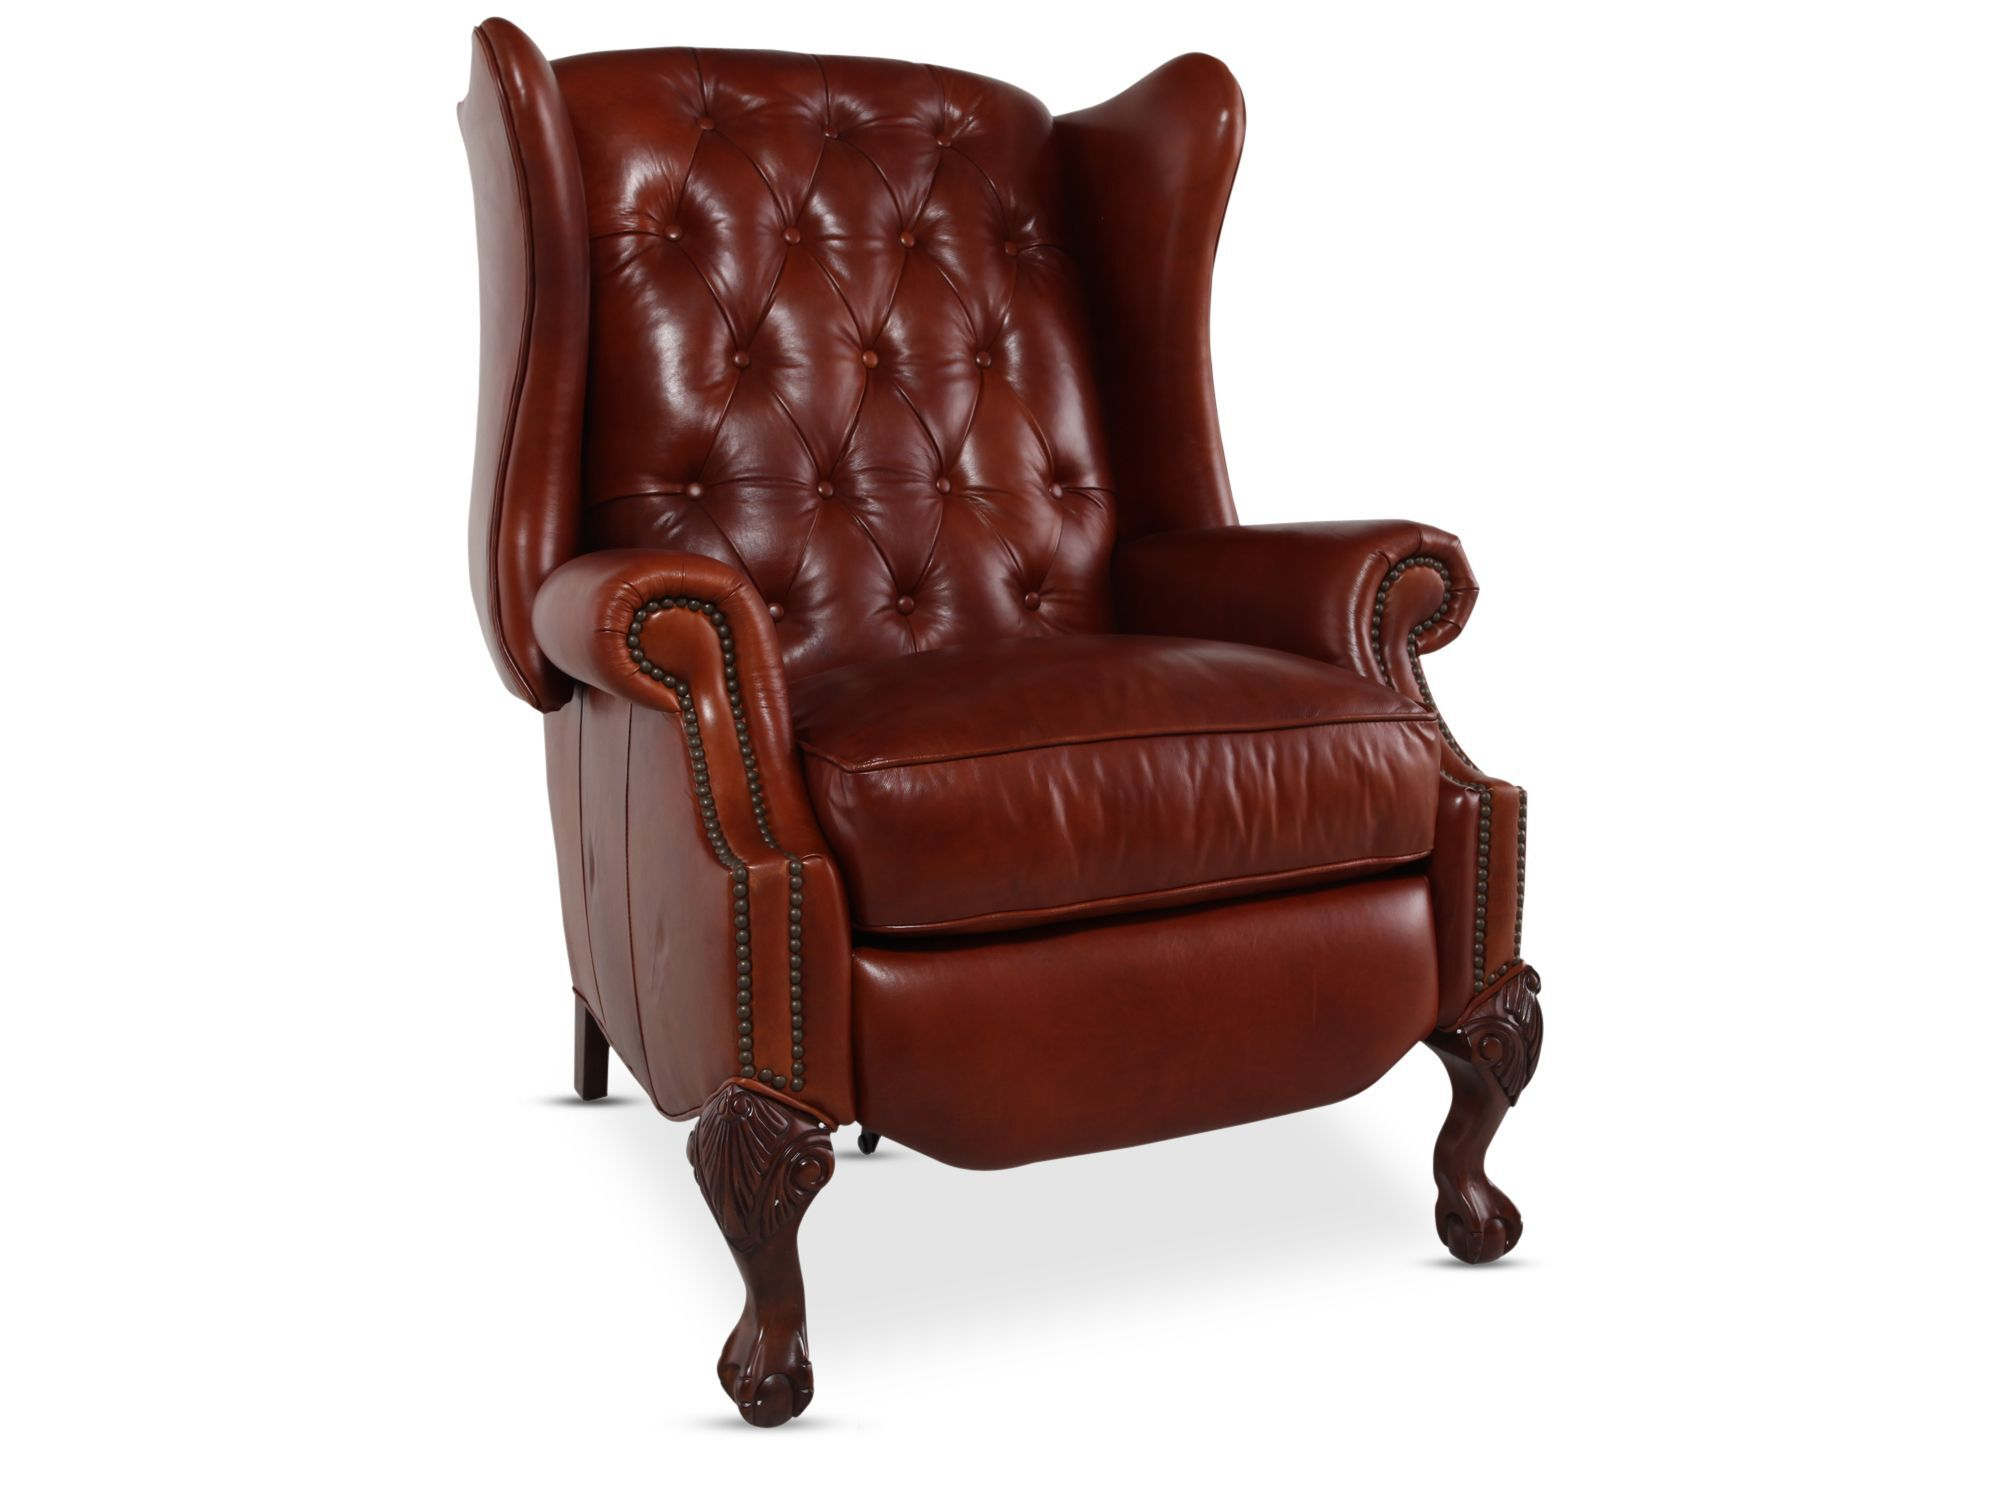 Button-tufted Leather Recliner In Red Mathis Brothers